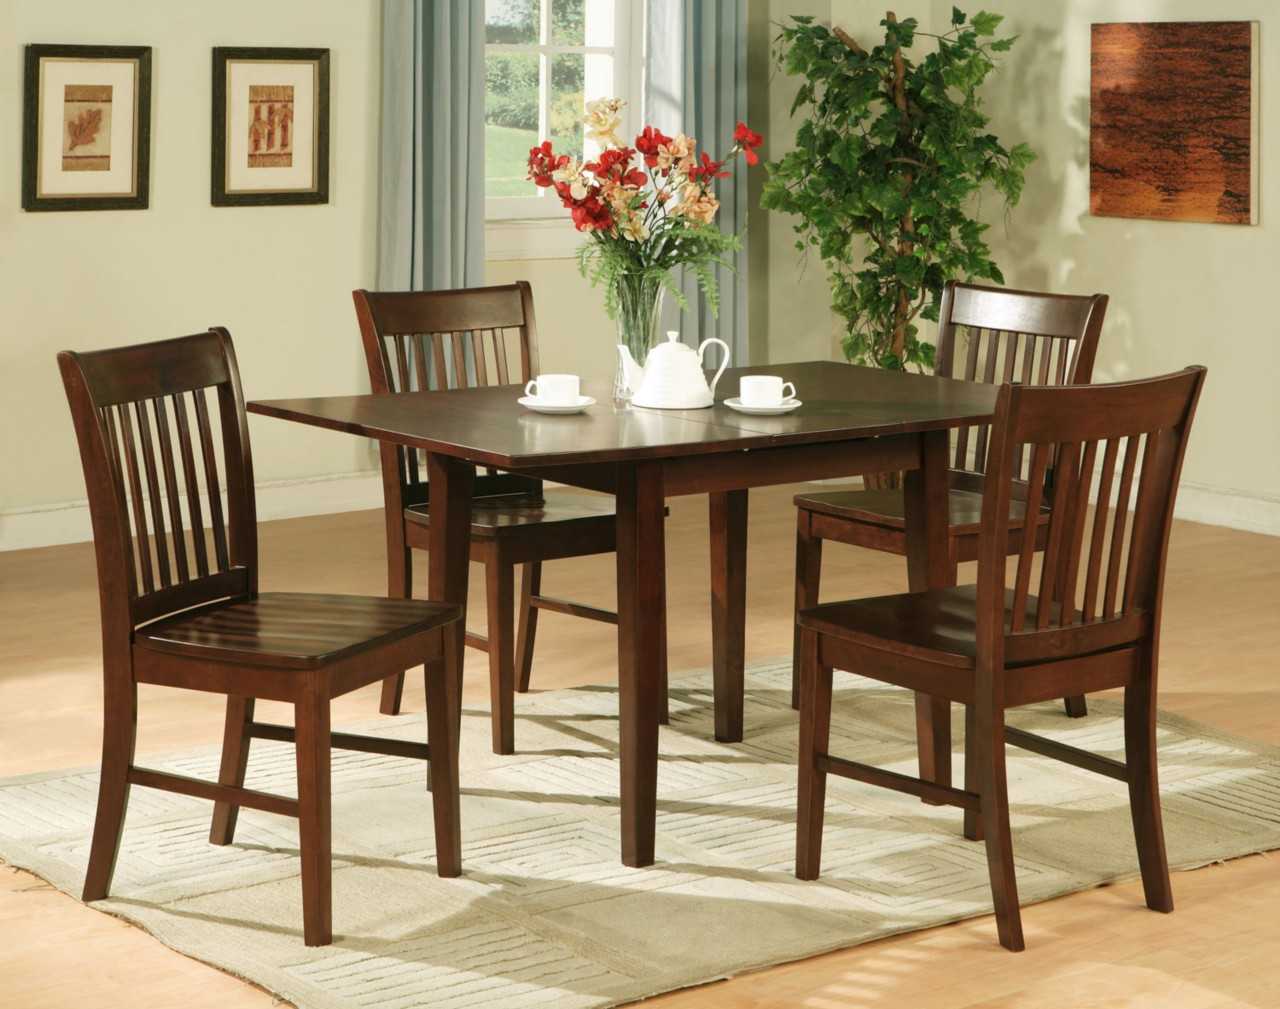 5pc rectangular kitchen dinette table 4 chairs mahogany ebay for 4 kitchen table chairs